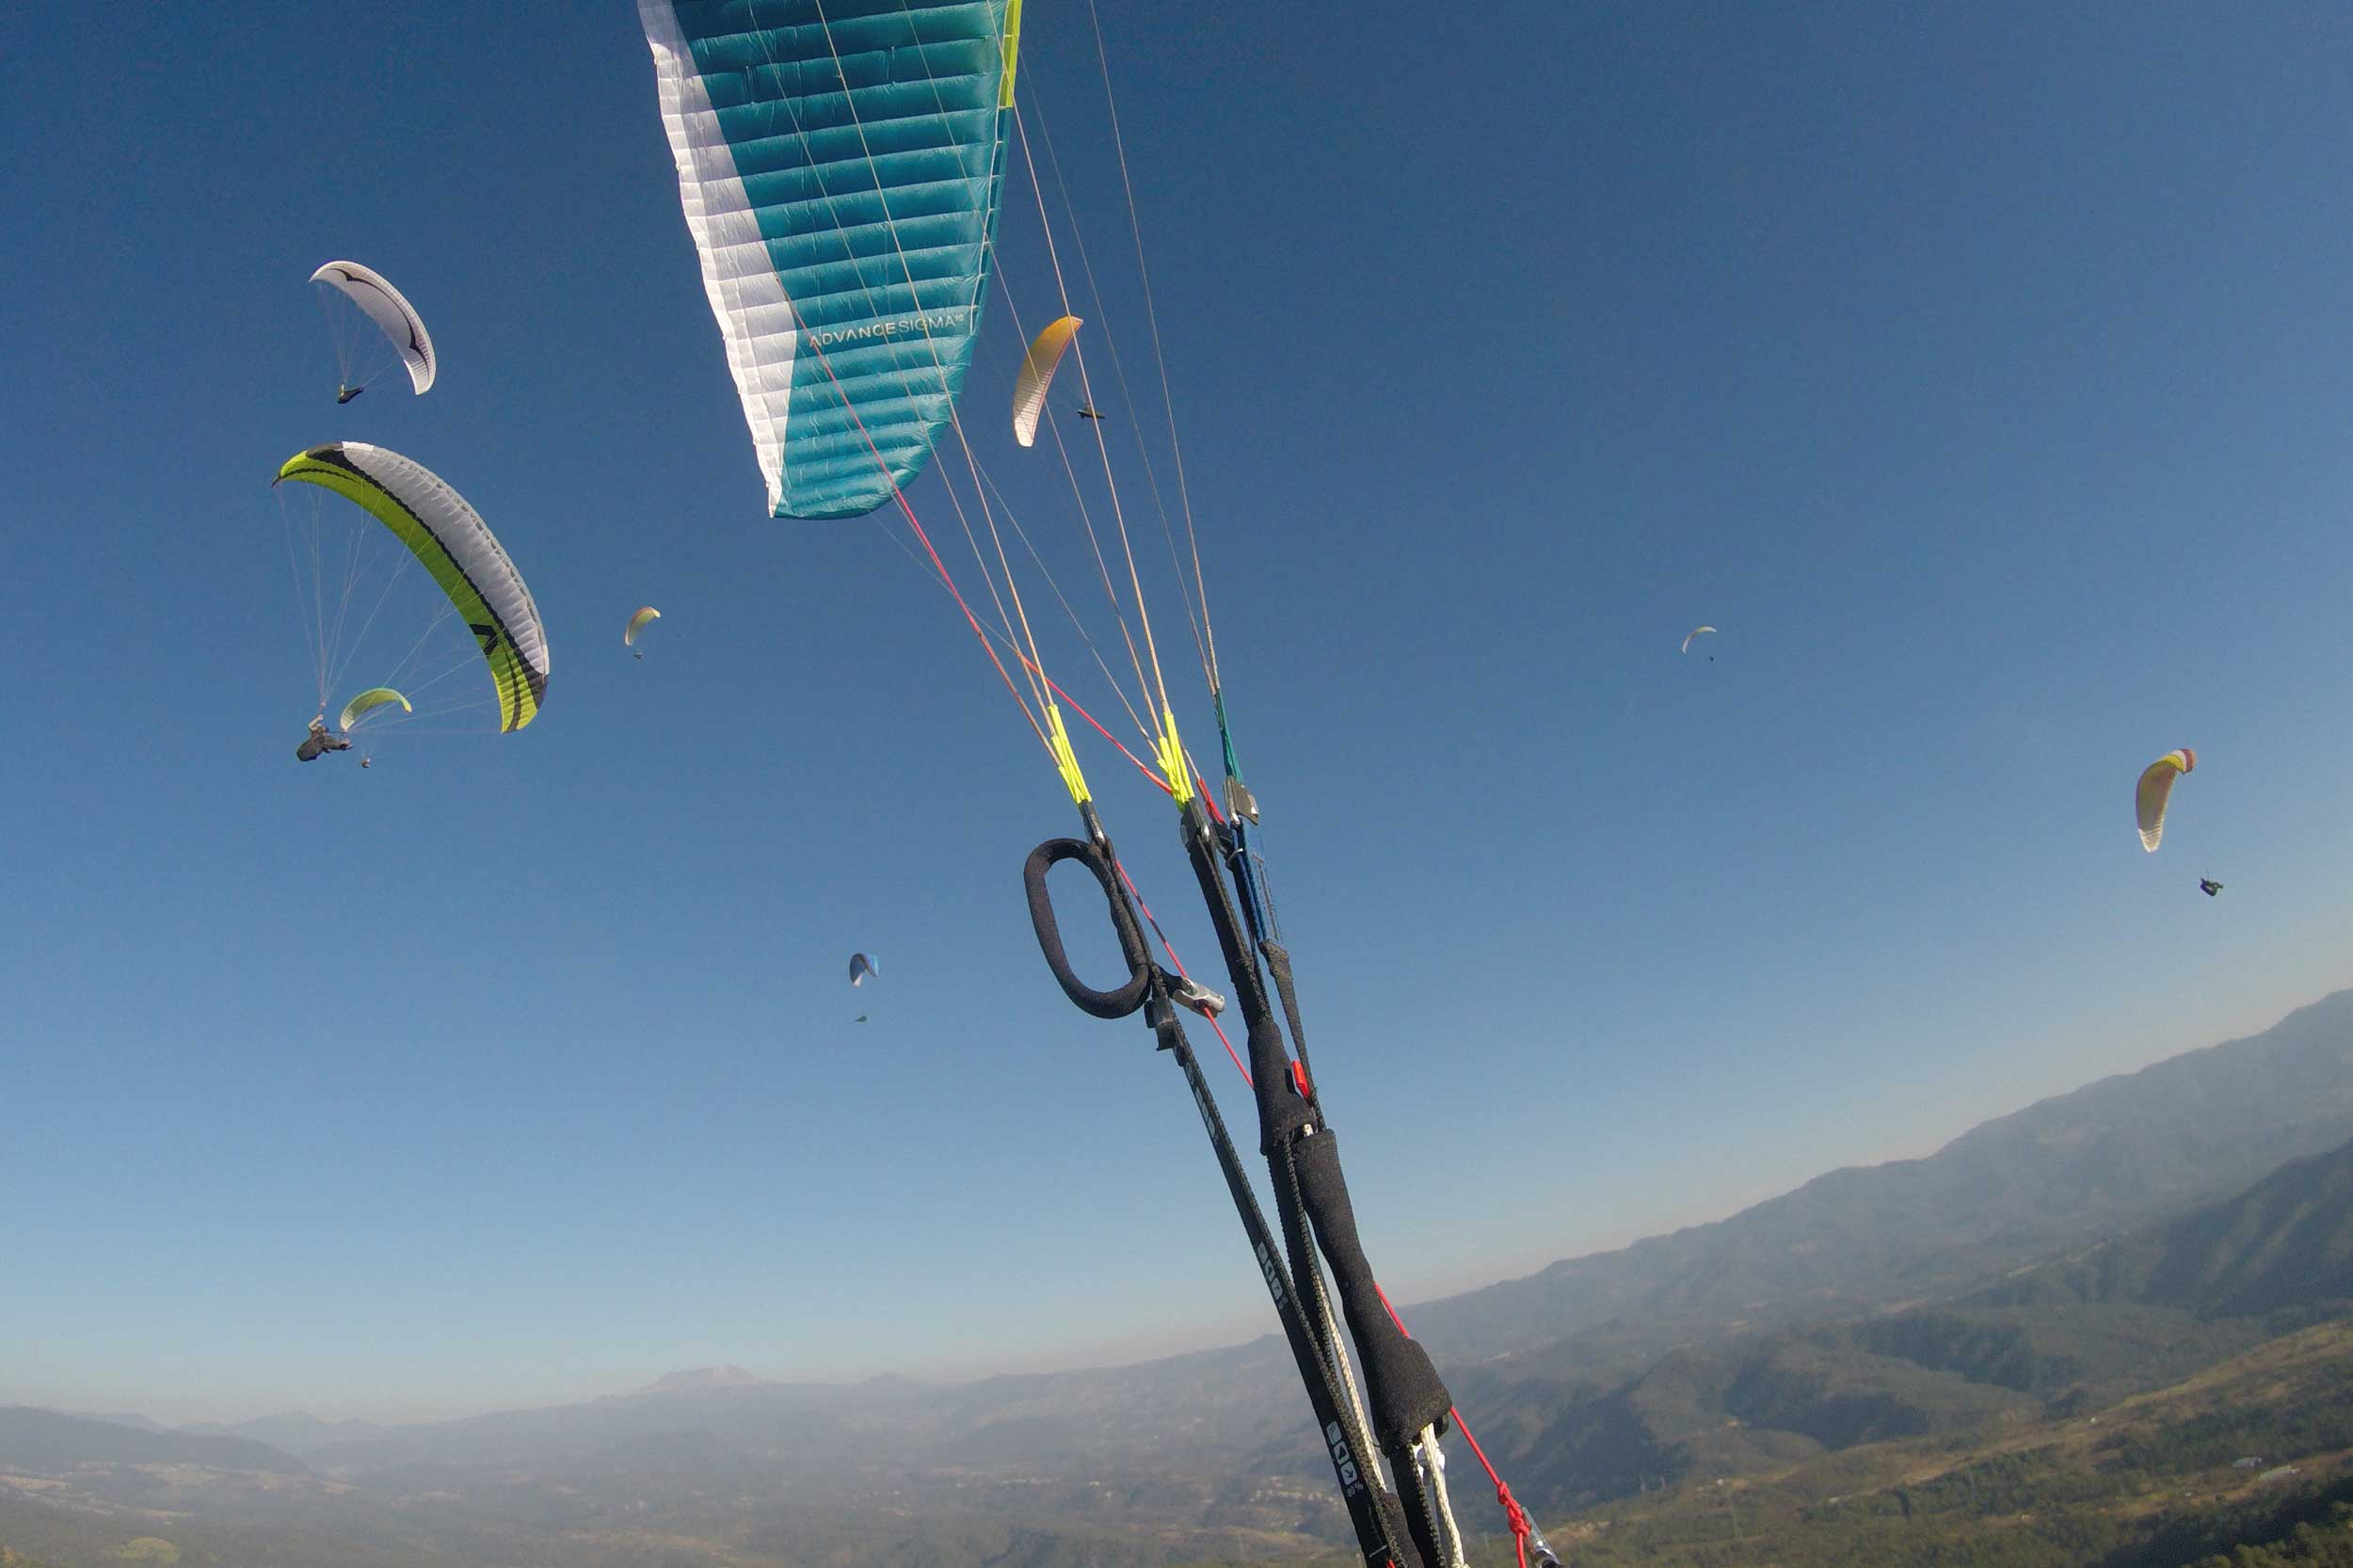 Paraglide-New-England-Trips-Valle-de-Bravo-Mexico-Gallery-Tim-FPV-House-Thermal.jpg